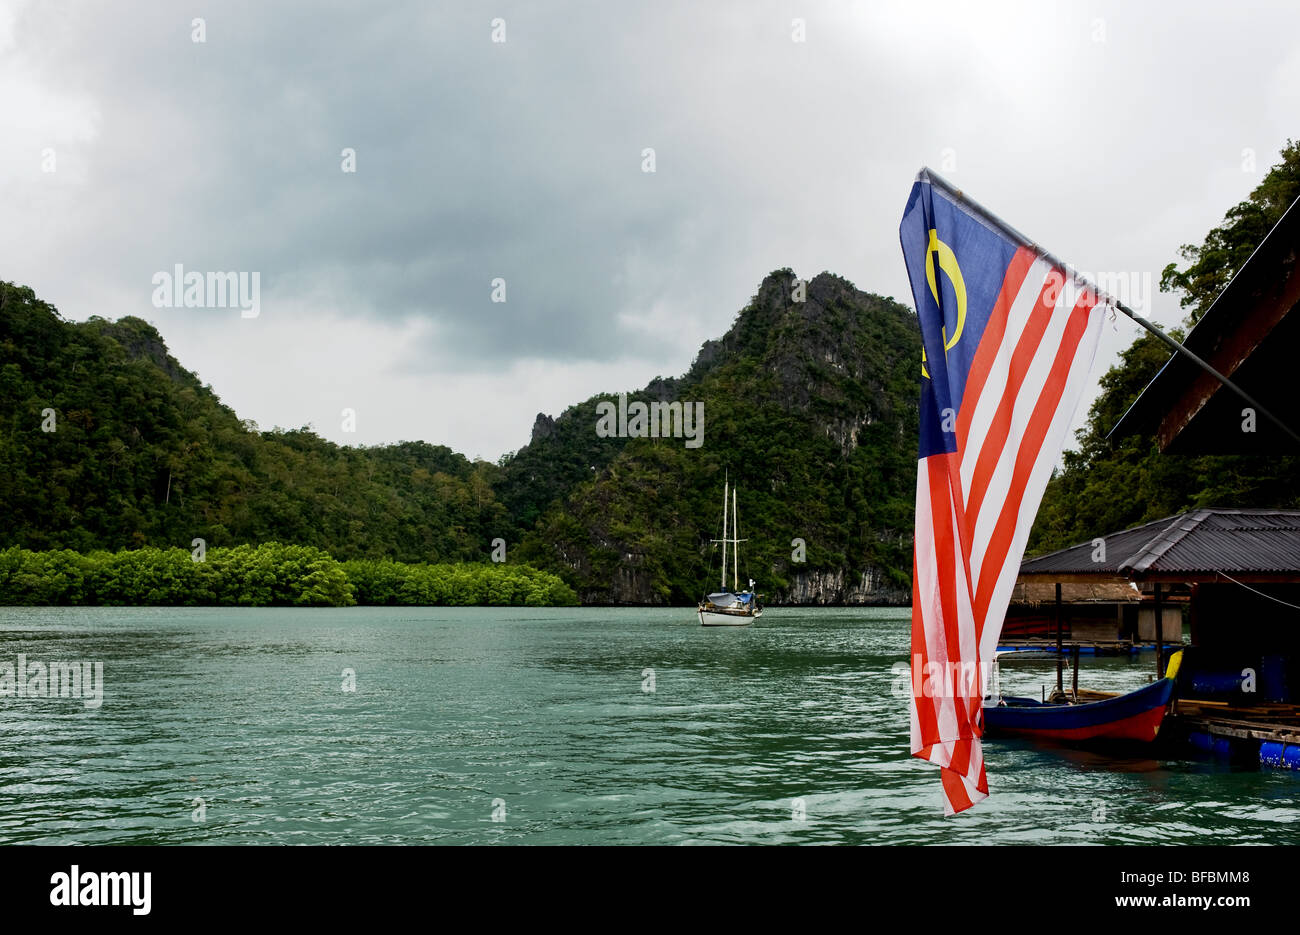 The Malaysian national flag flying in the Kilim Geoforest area of Langkawi, Malaysia.  Photo by Gordon Scammell - Stock Image